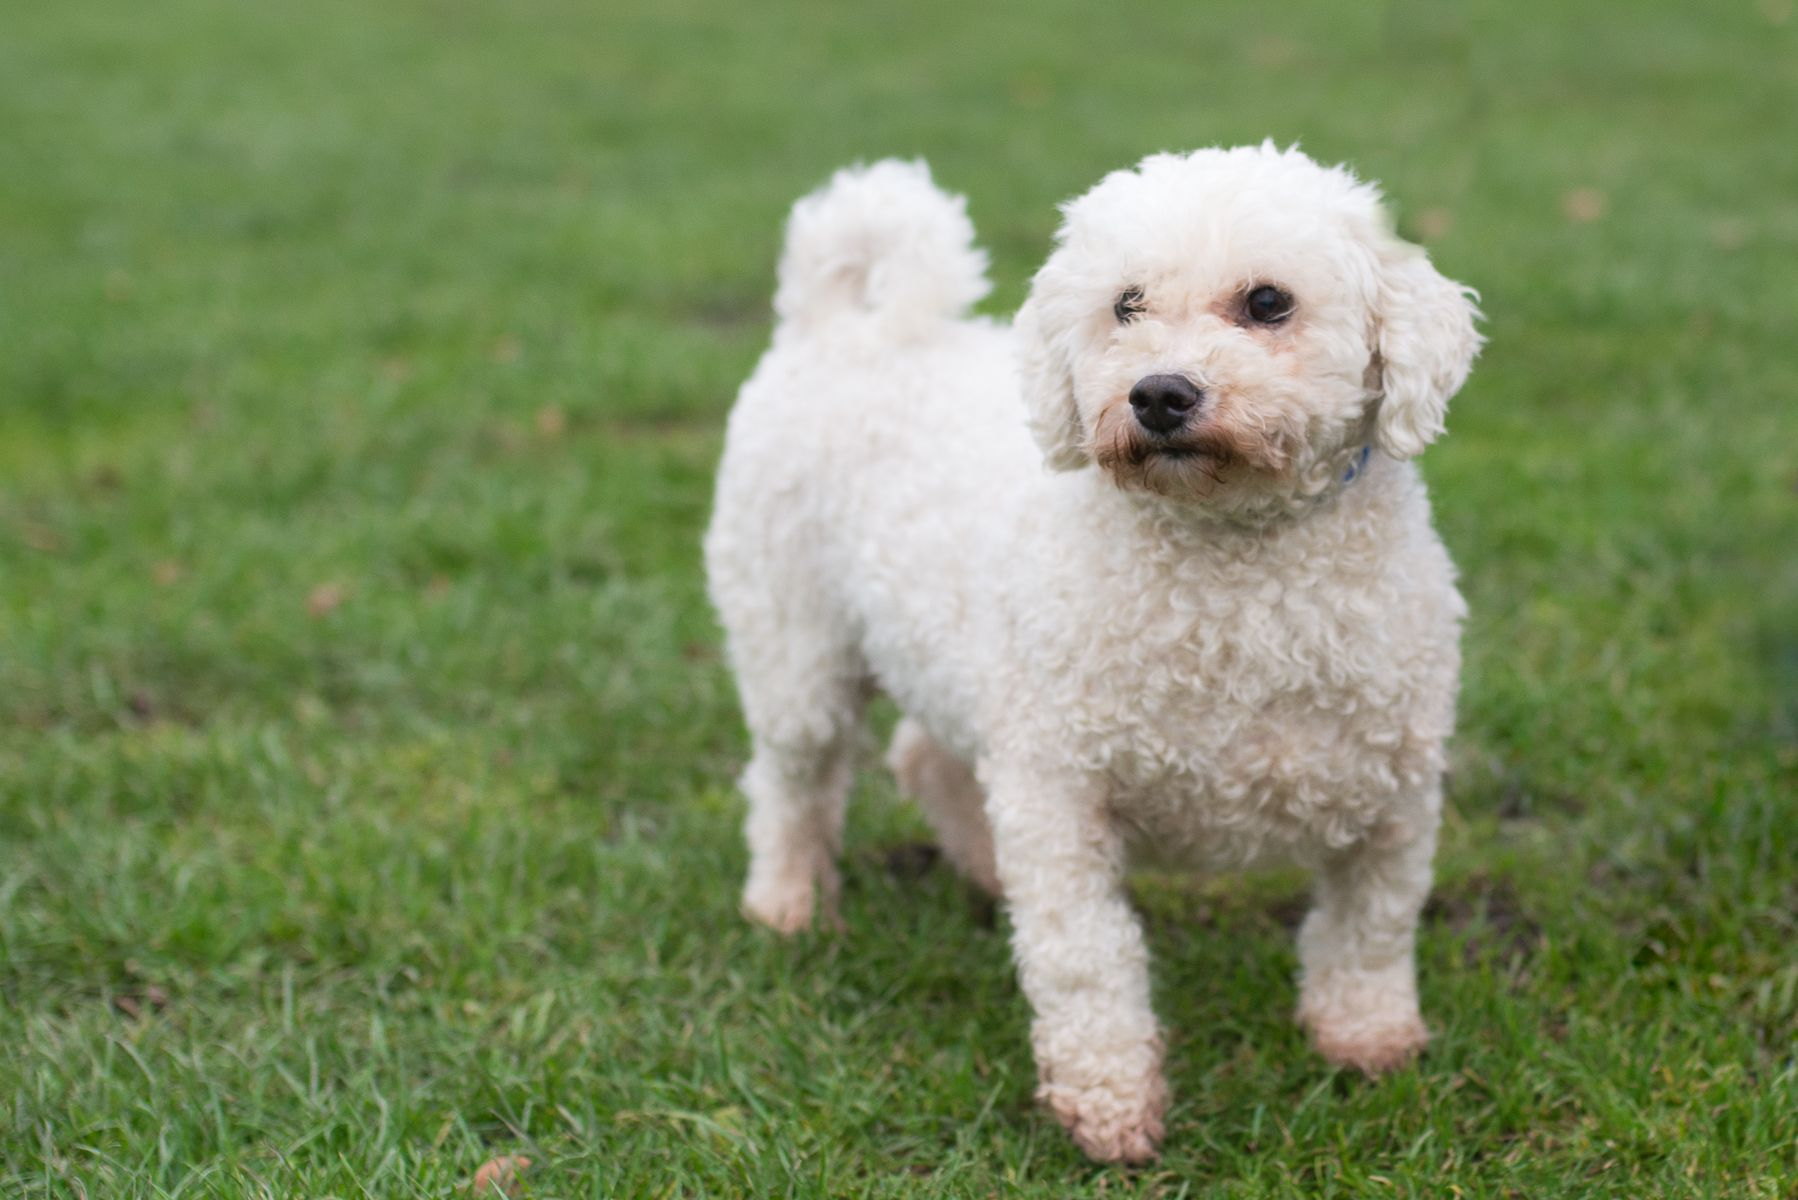 Bichon Frise Male Neutered 6 Years 10 Months Old Reserved Bobby Joe Is To Be Rehomed With His Brother Max D2017291 Bichon Frise Bichon Dogs